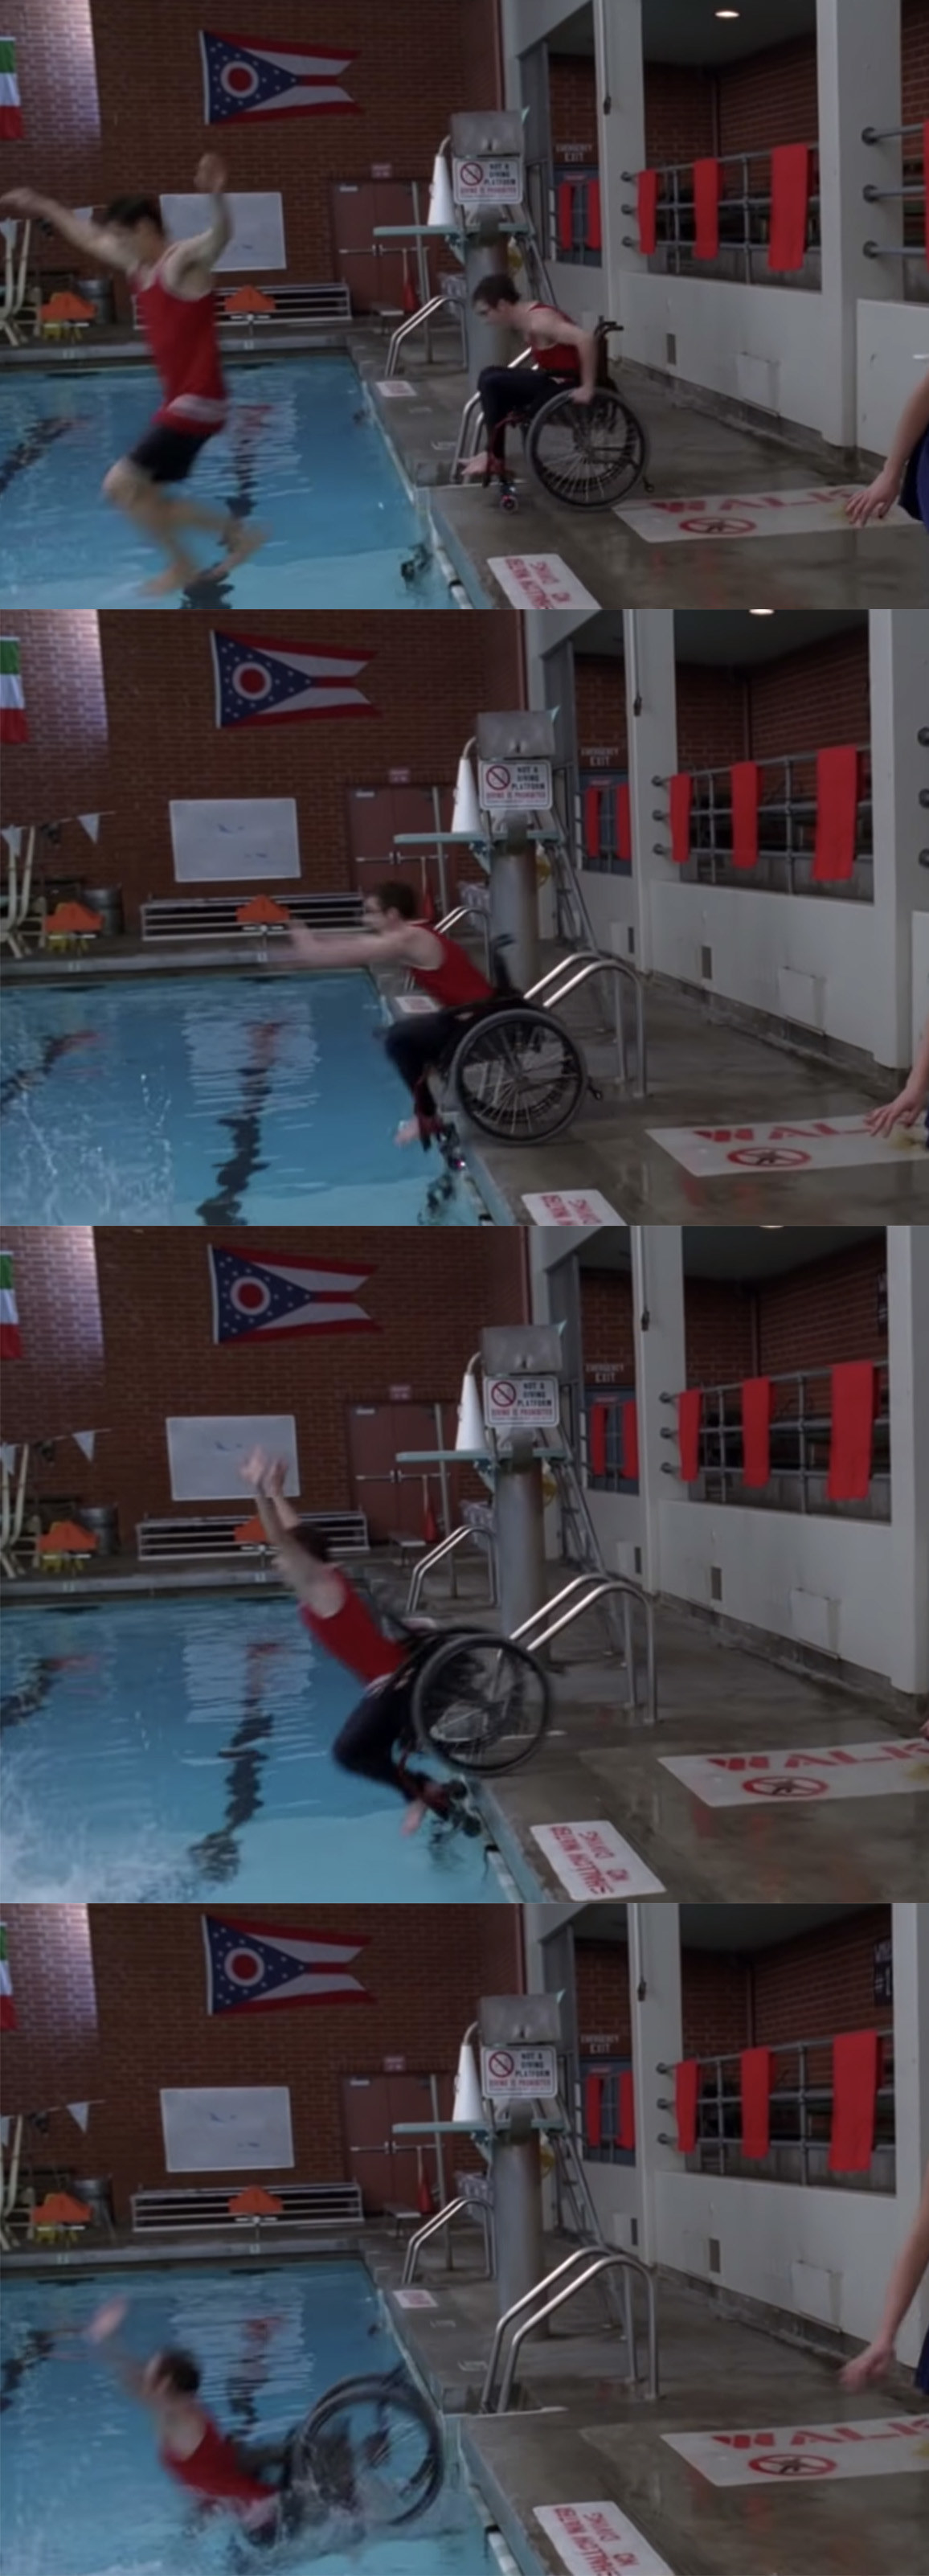 Artie wheeling himself into the pool.